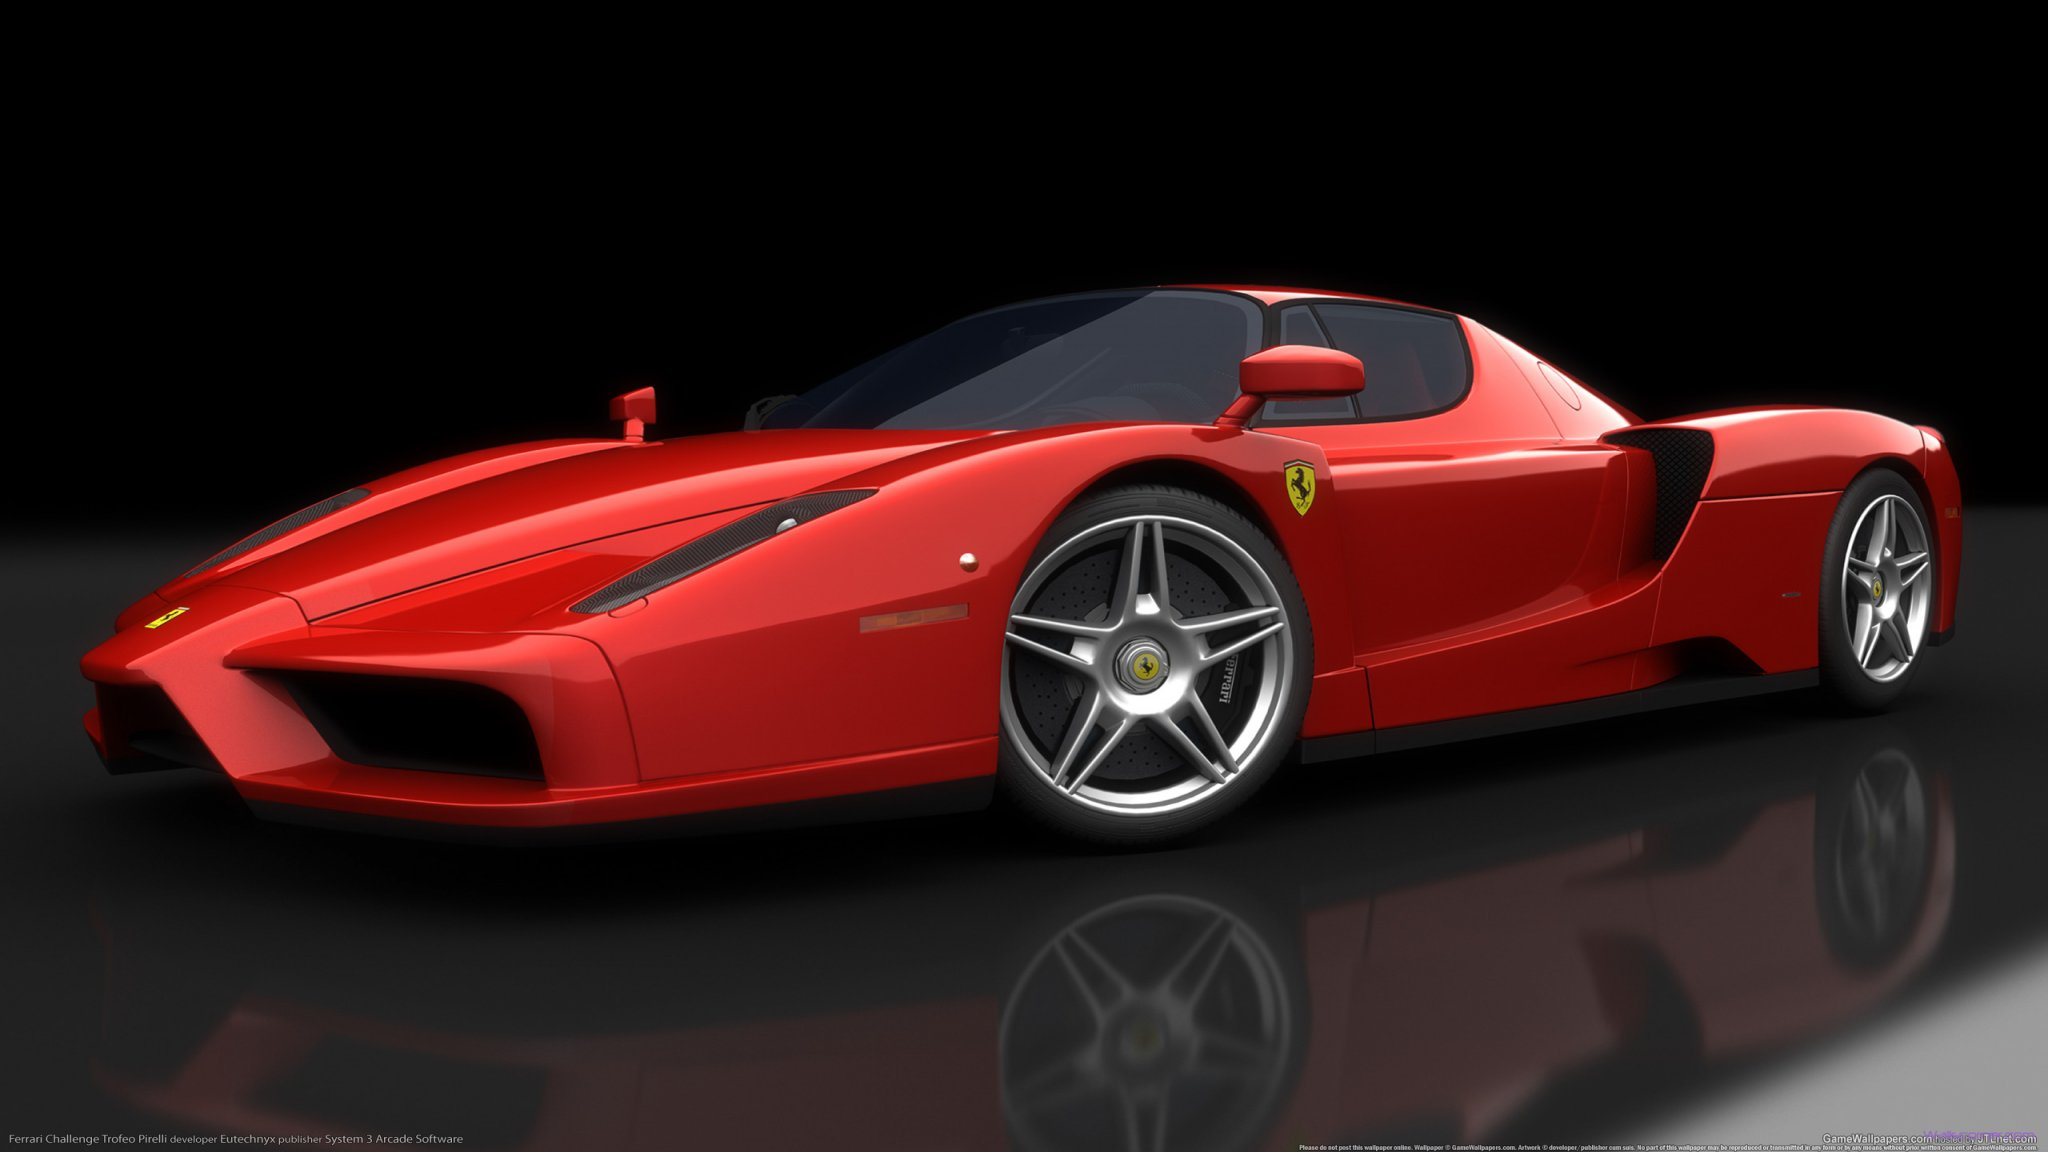 Permalink to Ferrari Long Island